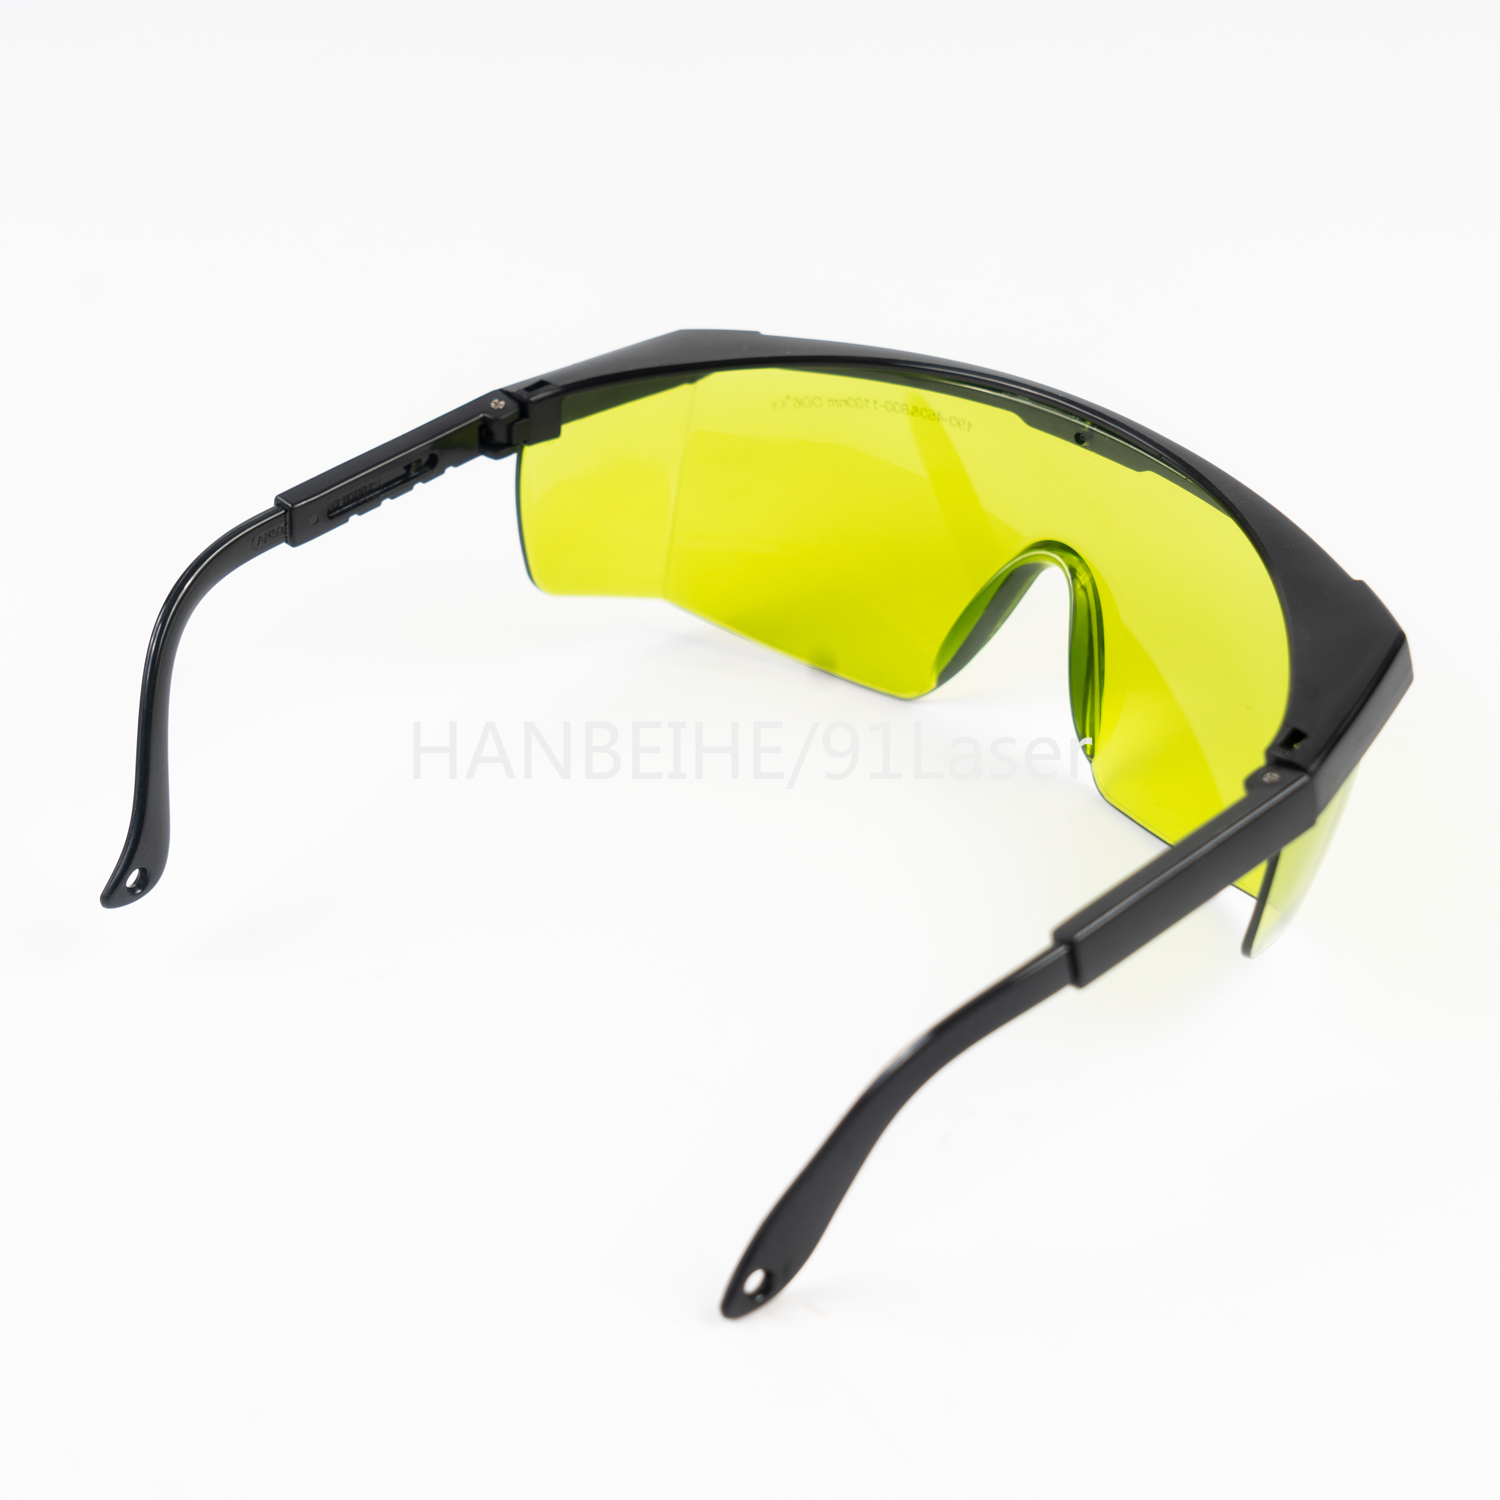 Laser Safety <font><b>Glasses</b></font> for 190nm-<font><b>450nm</b></font> and 800nm-1100nm O.D 6+ CE with Accessories 808nm 980nm 1064nm 1070nm 1080nm Lasers image